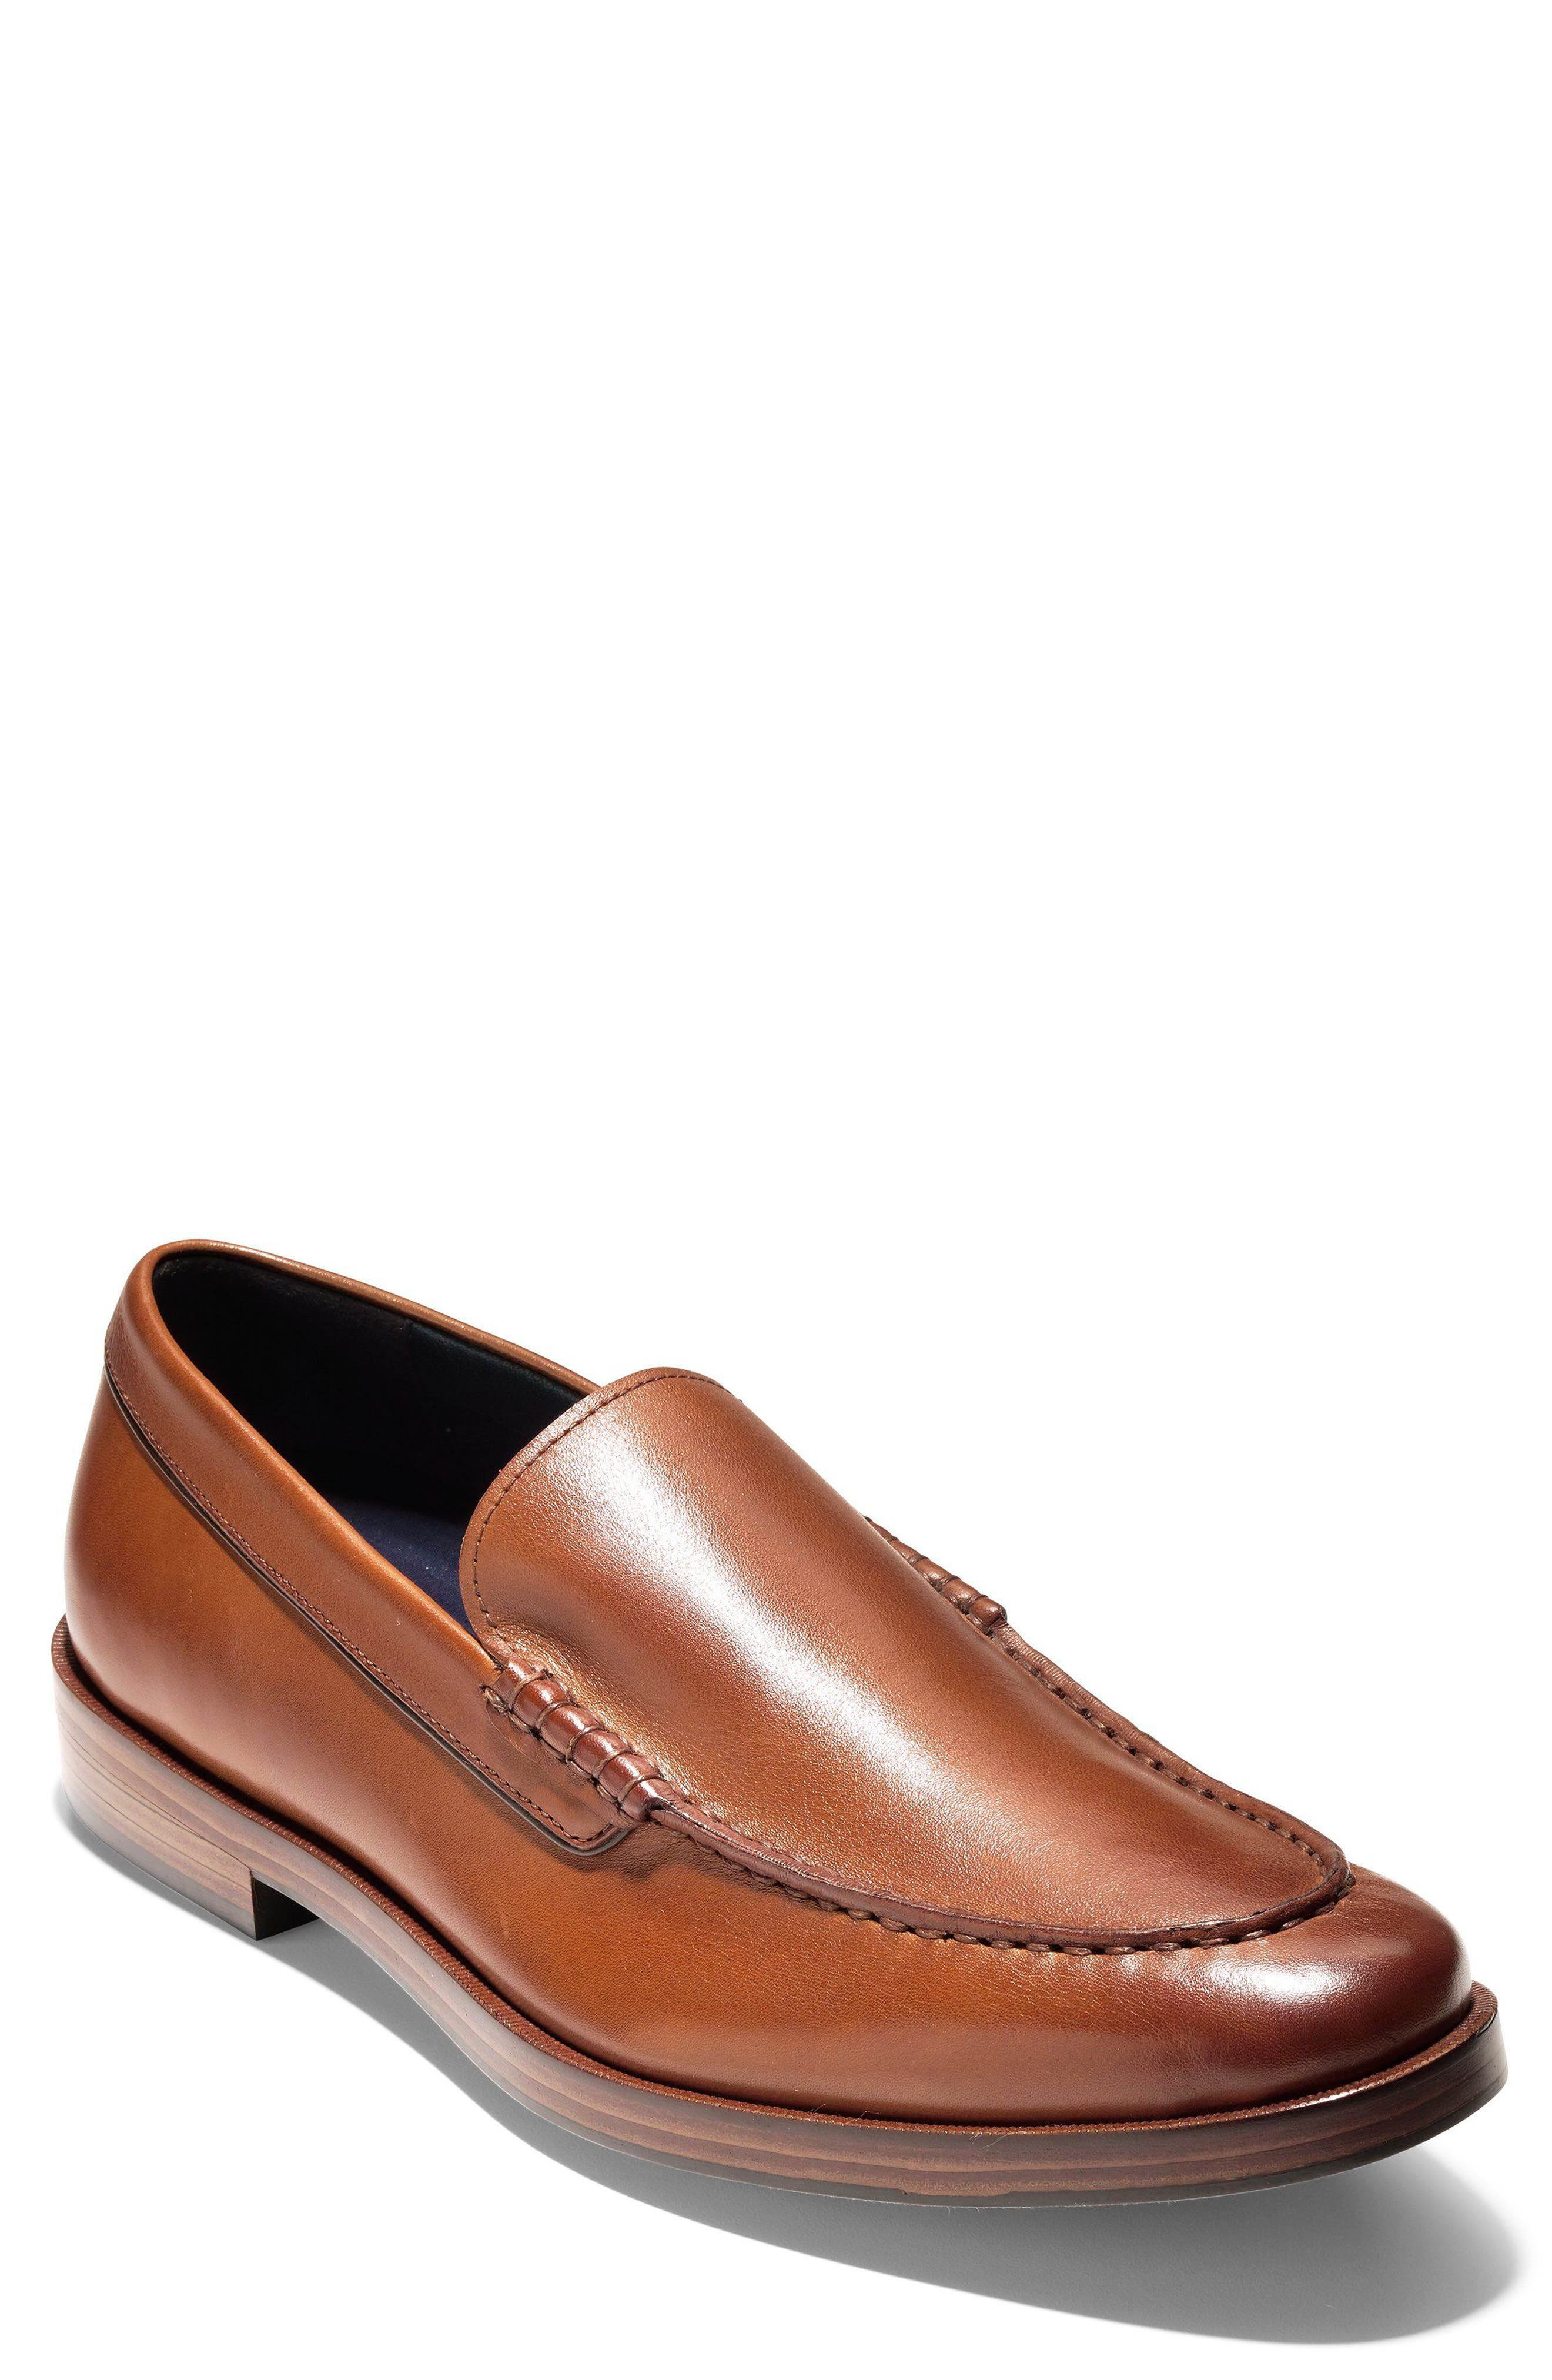 cole haan shoes brown for jeans males taking showers with childr